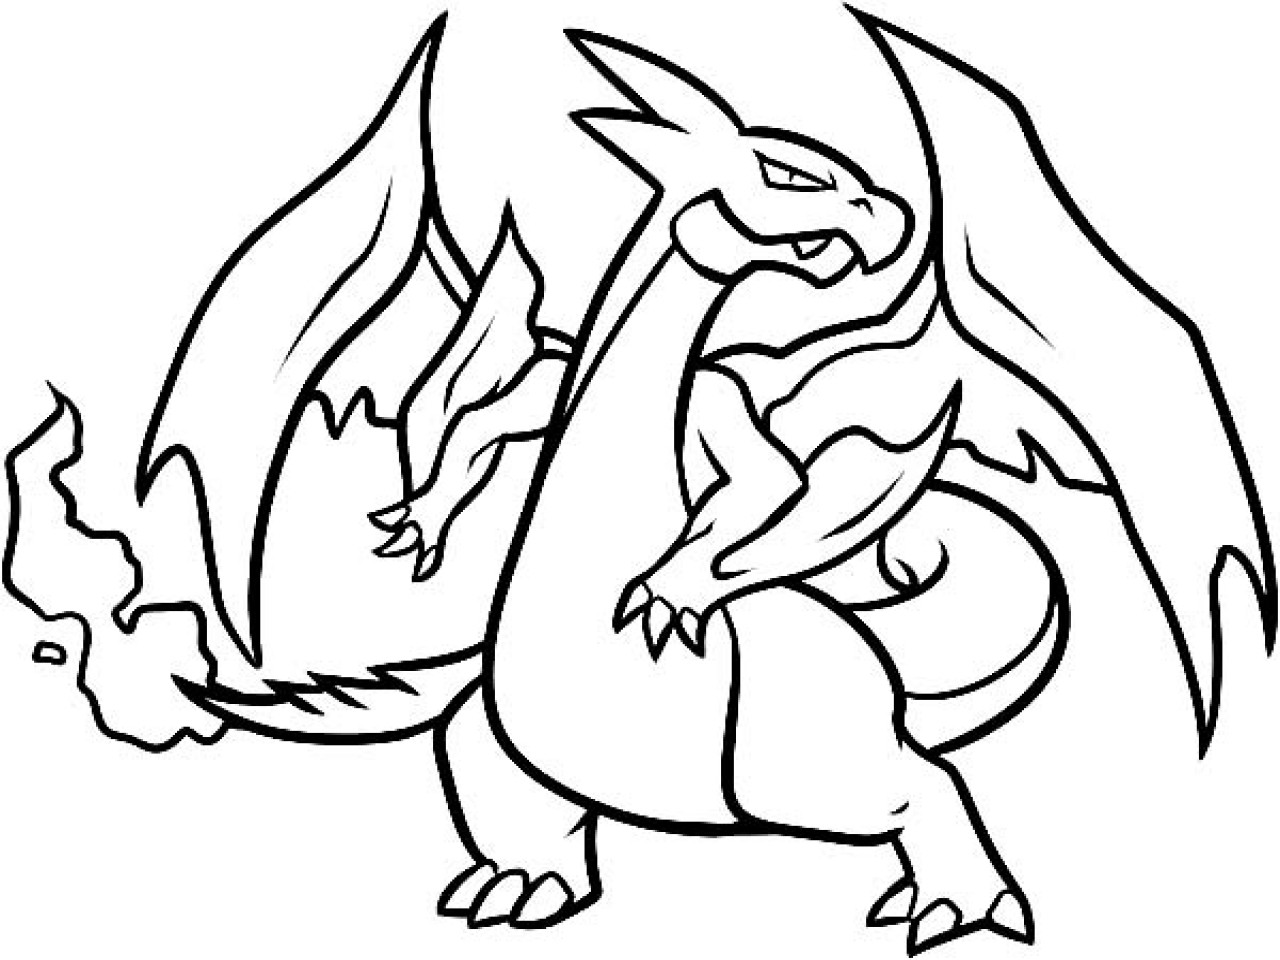 pokemon kingdra coloring pages pokemon coloring pages mega charizard at getcoloringscom kingdra pages pokemon coloring